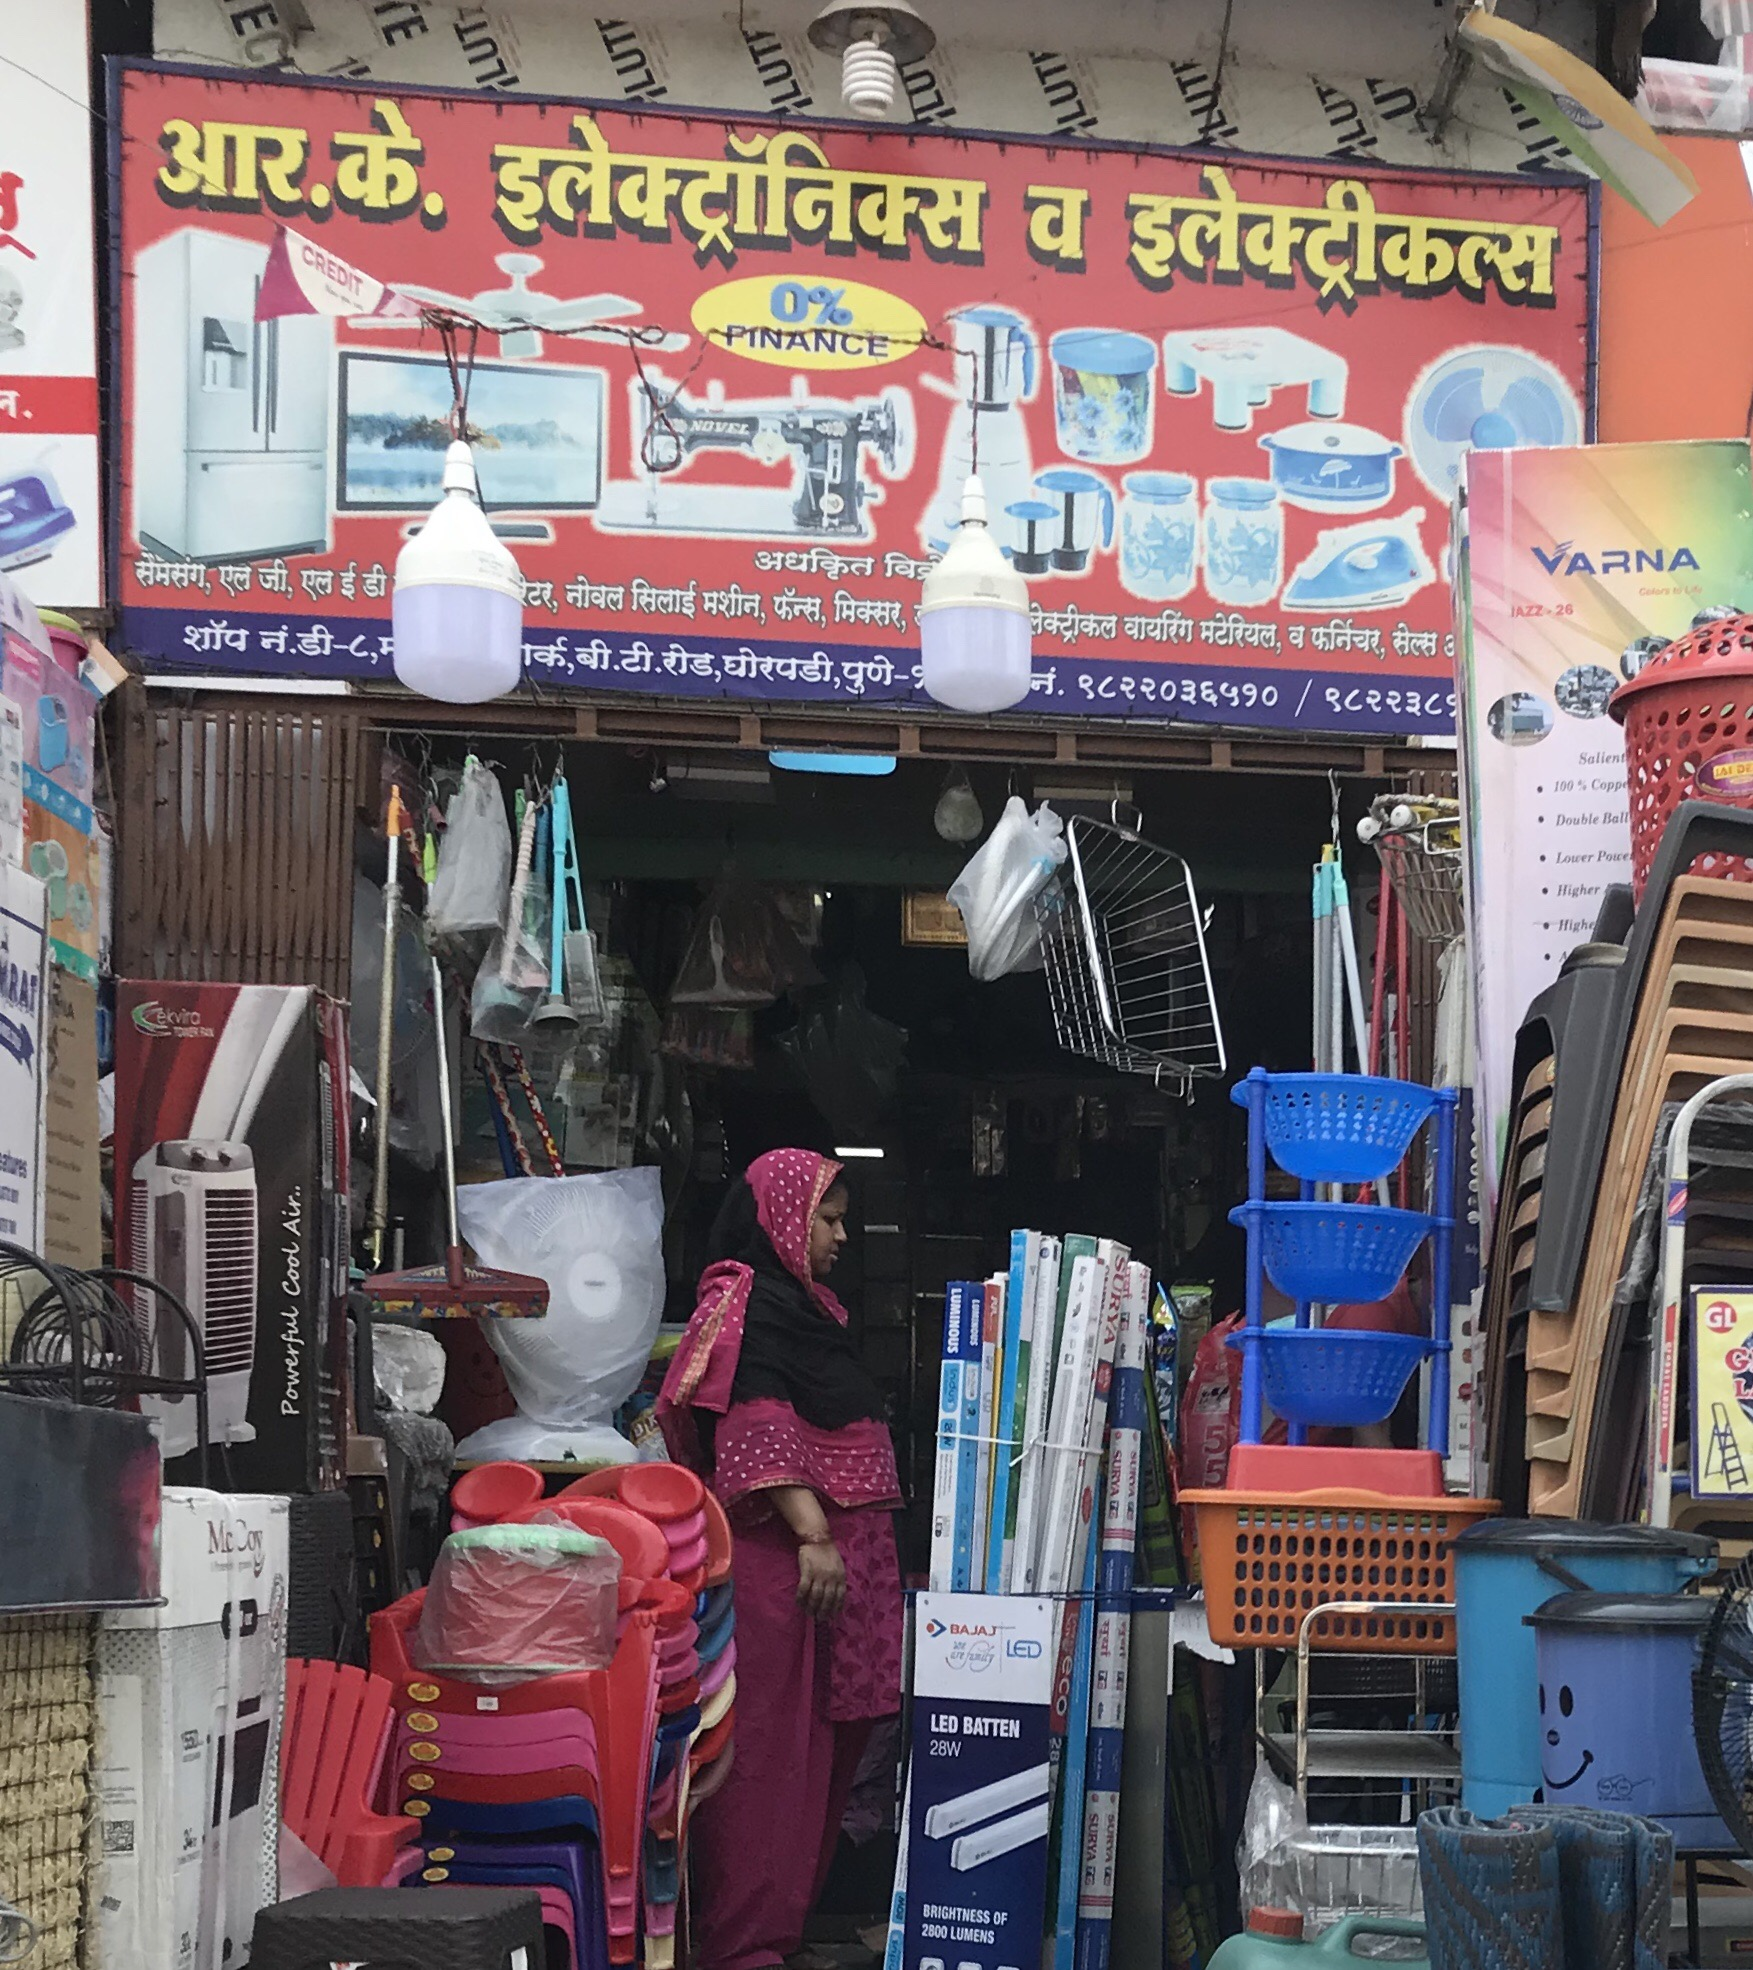 R K Electricals and Electronics Electrical And Sanitary in Ghorpadi Pune